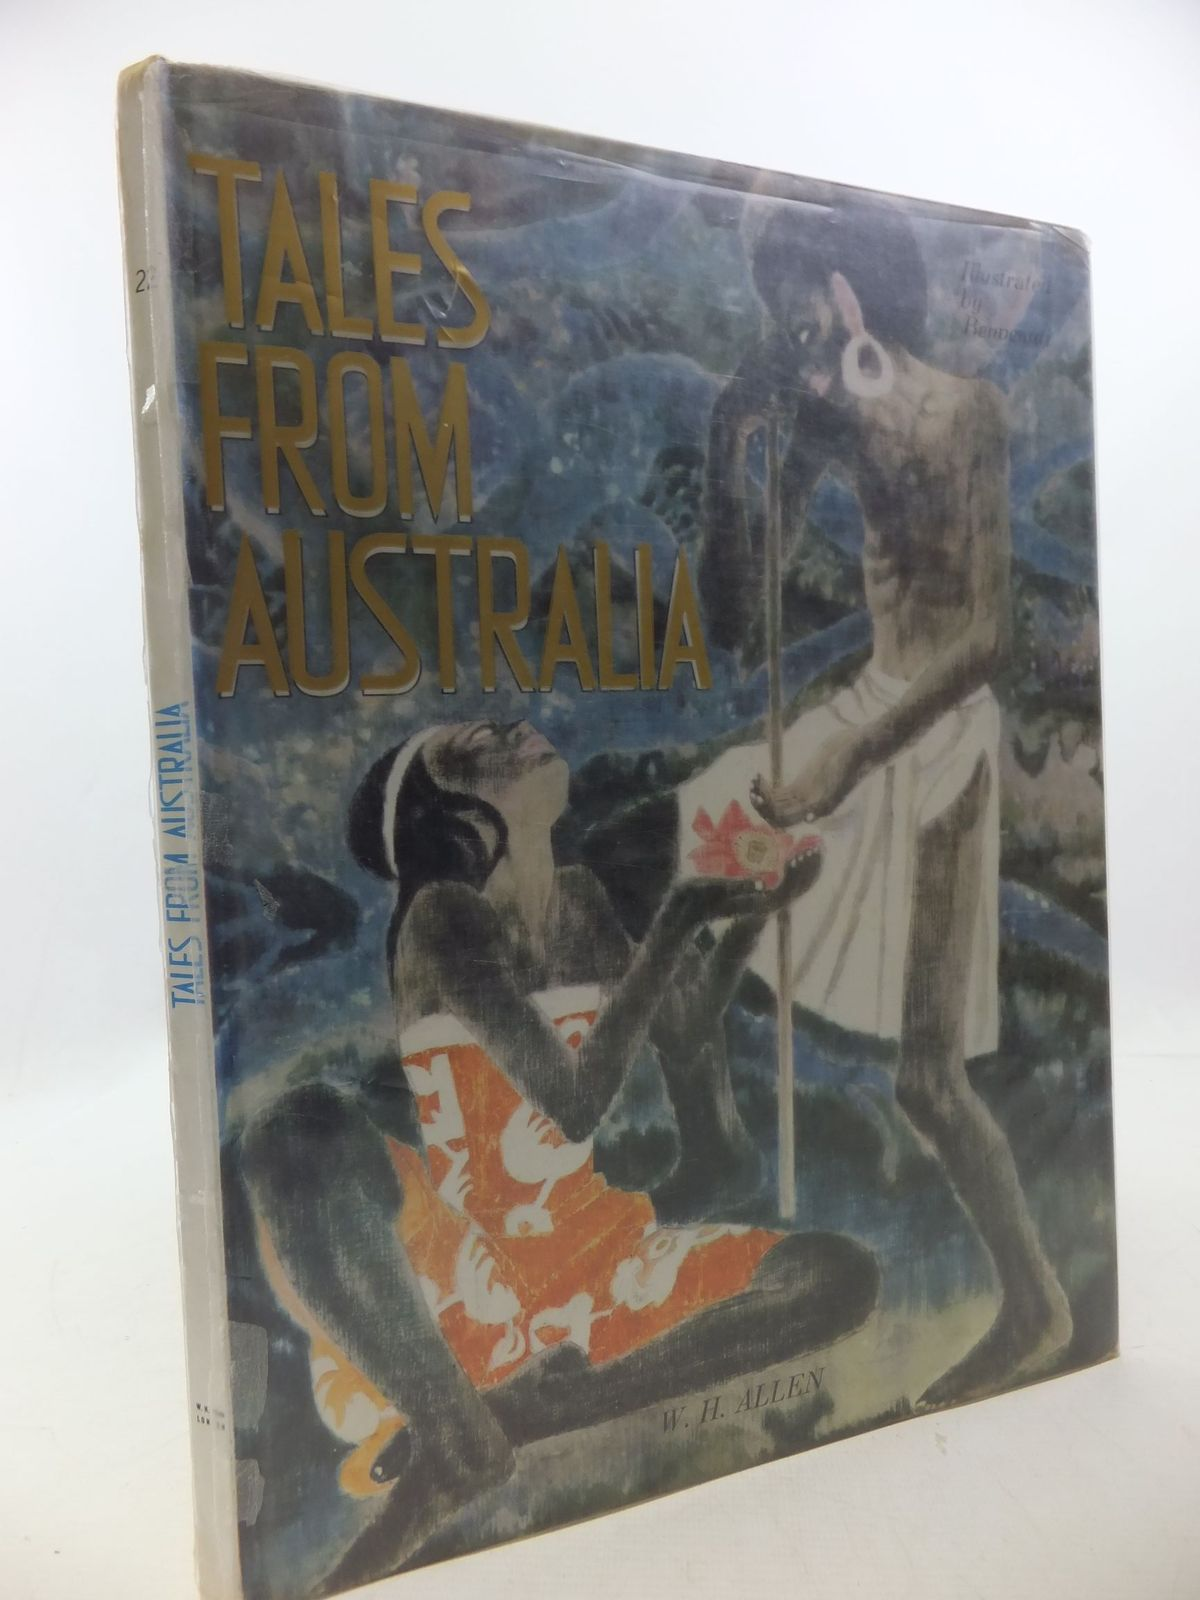 Photo of TALES FROM AUSTRALIA written by Goulden, Shirley illustrated by Benvenuti, published by W.H.Allen (STOCK CODE: 1709883)  for sale by Stella & Rose's Books